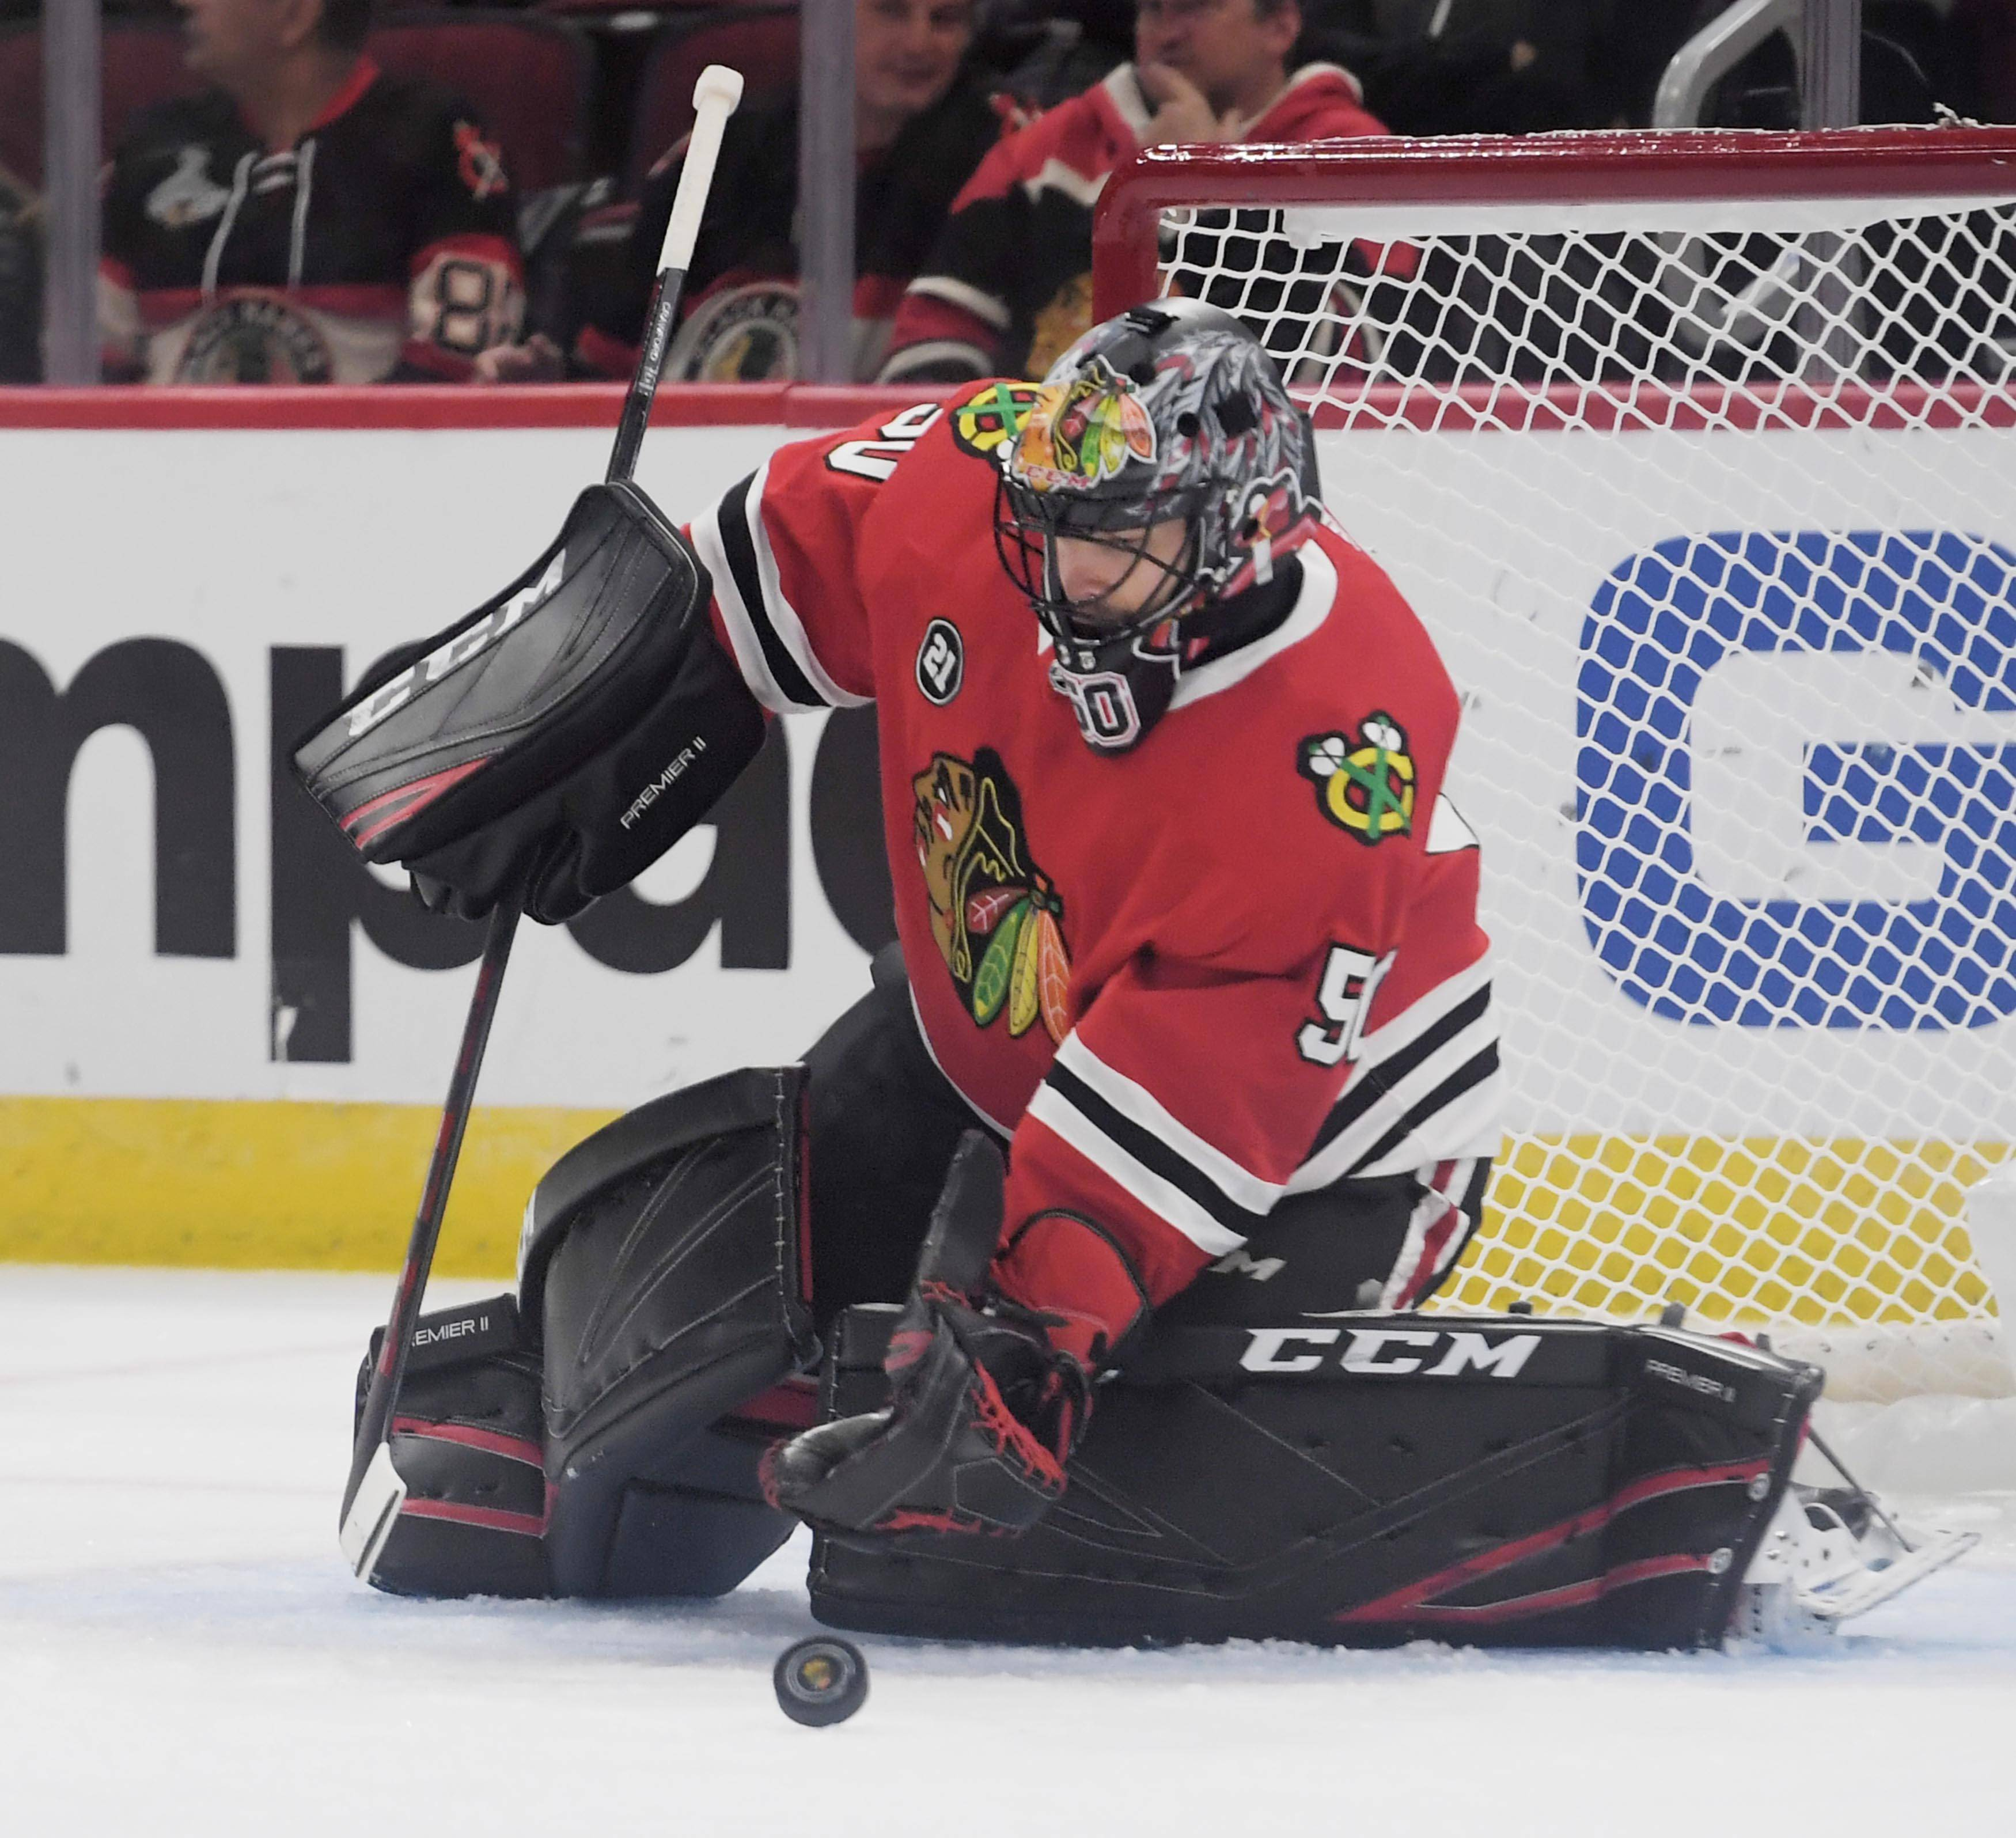 Blackhawks goaltender Corey Crawford practiced Monday and then did extra work in his first complete practice since suffering a concussion nearly two months ago. His return to game action has not been determined.